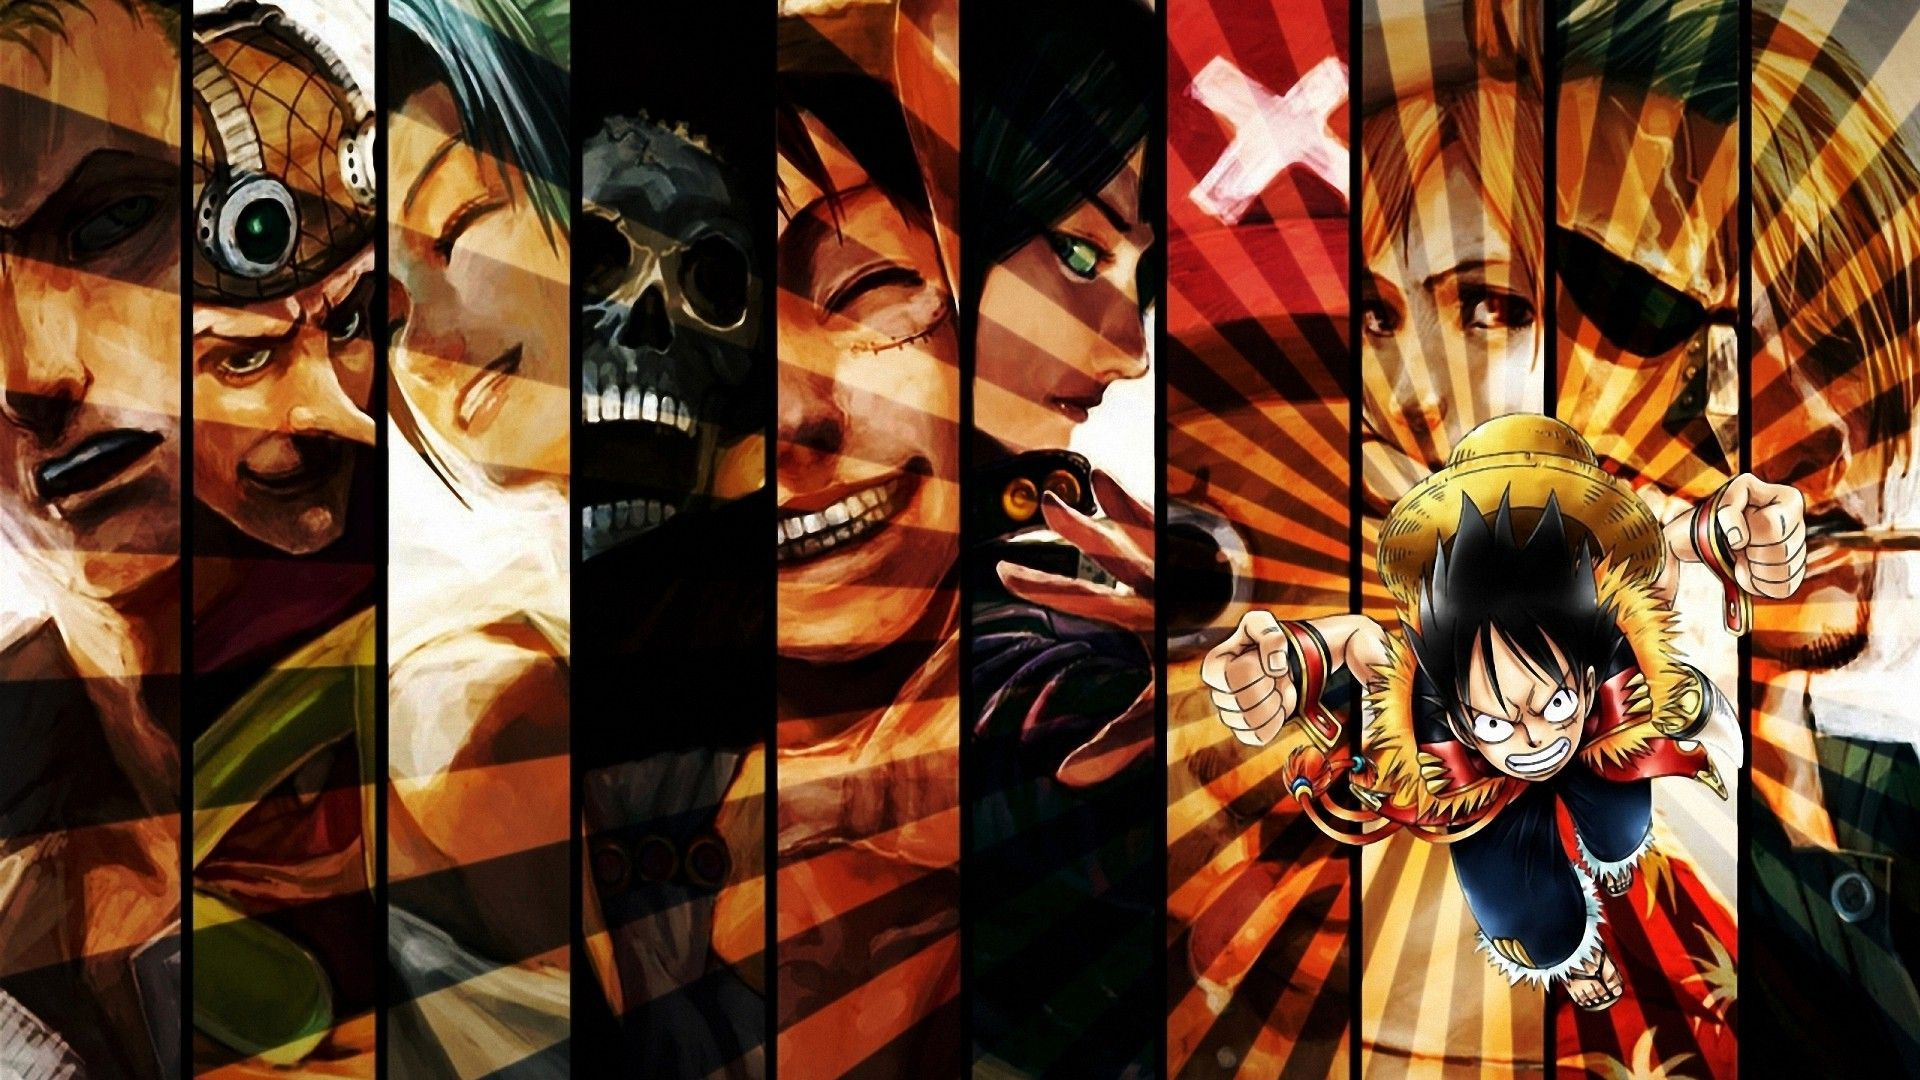 Our editors independently research, test, and recommend the best products; Ps4 Cover Anime One Piece Wallpapers - Wallpaper Cave